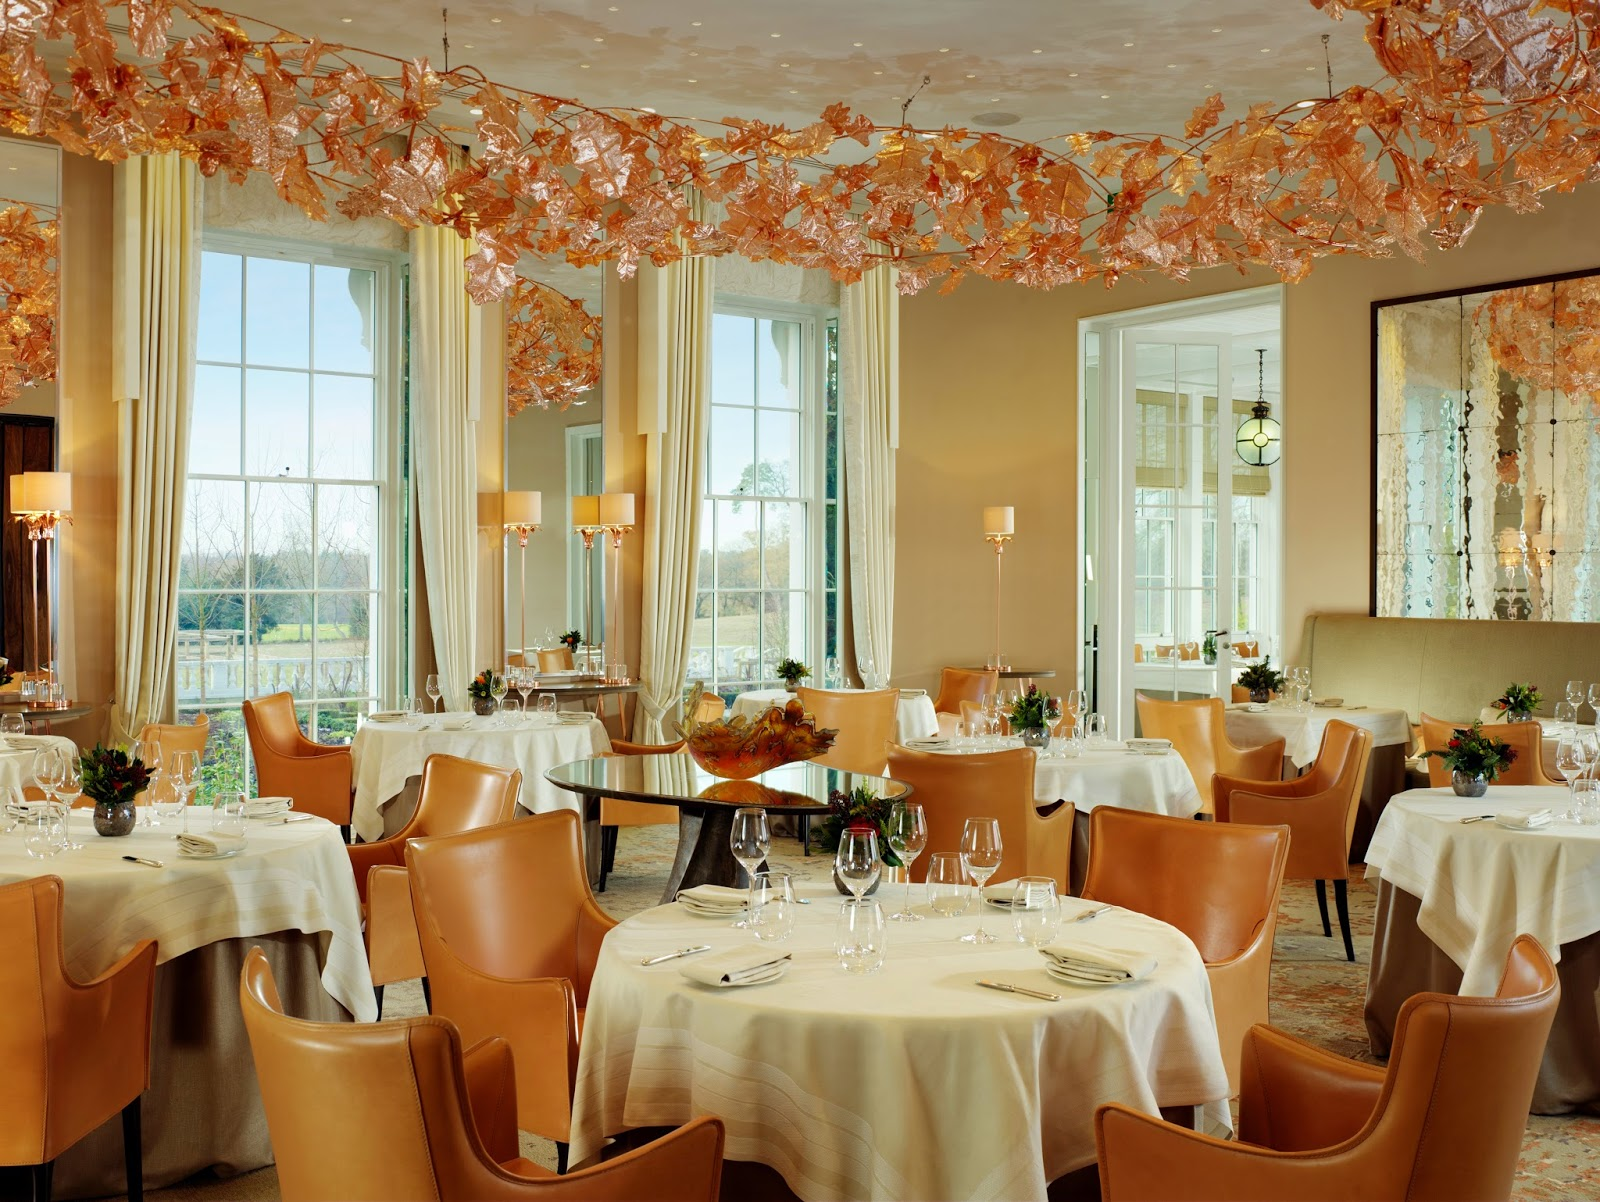 The silverspoon guide to staycations: my top 10 luxury hotels in ...